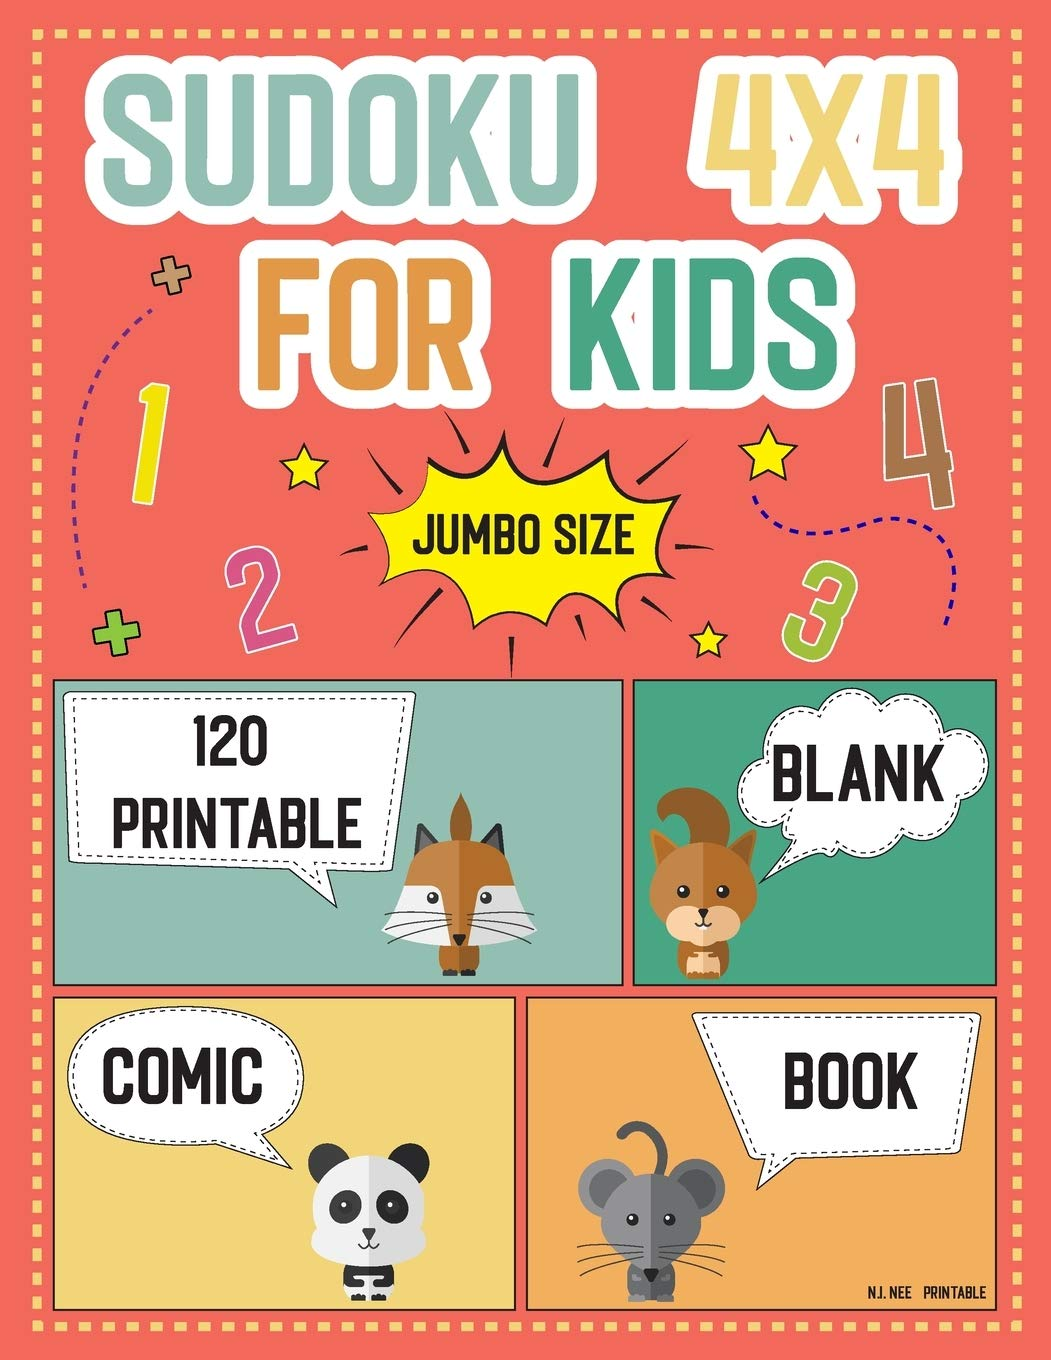 Buy Sudoku 4x4 For Kids Jumbo Size 120 Printable And Blank Comic Book Templates Worksheets Easy To Hard Puzzles For Kids Teens Kindergarten Ages 4 8 Children S Activity Books Book Online At Low